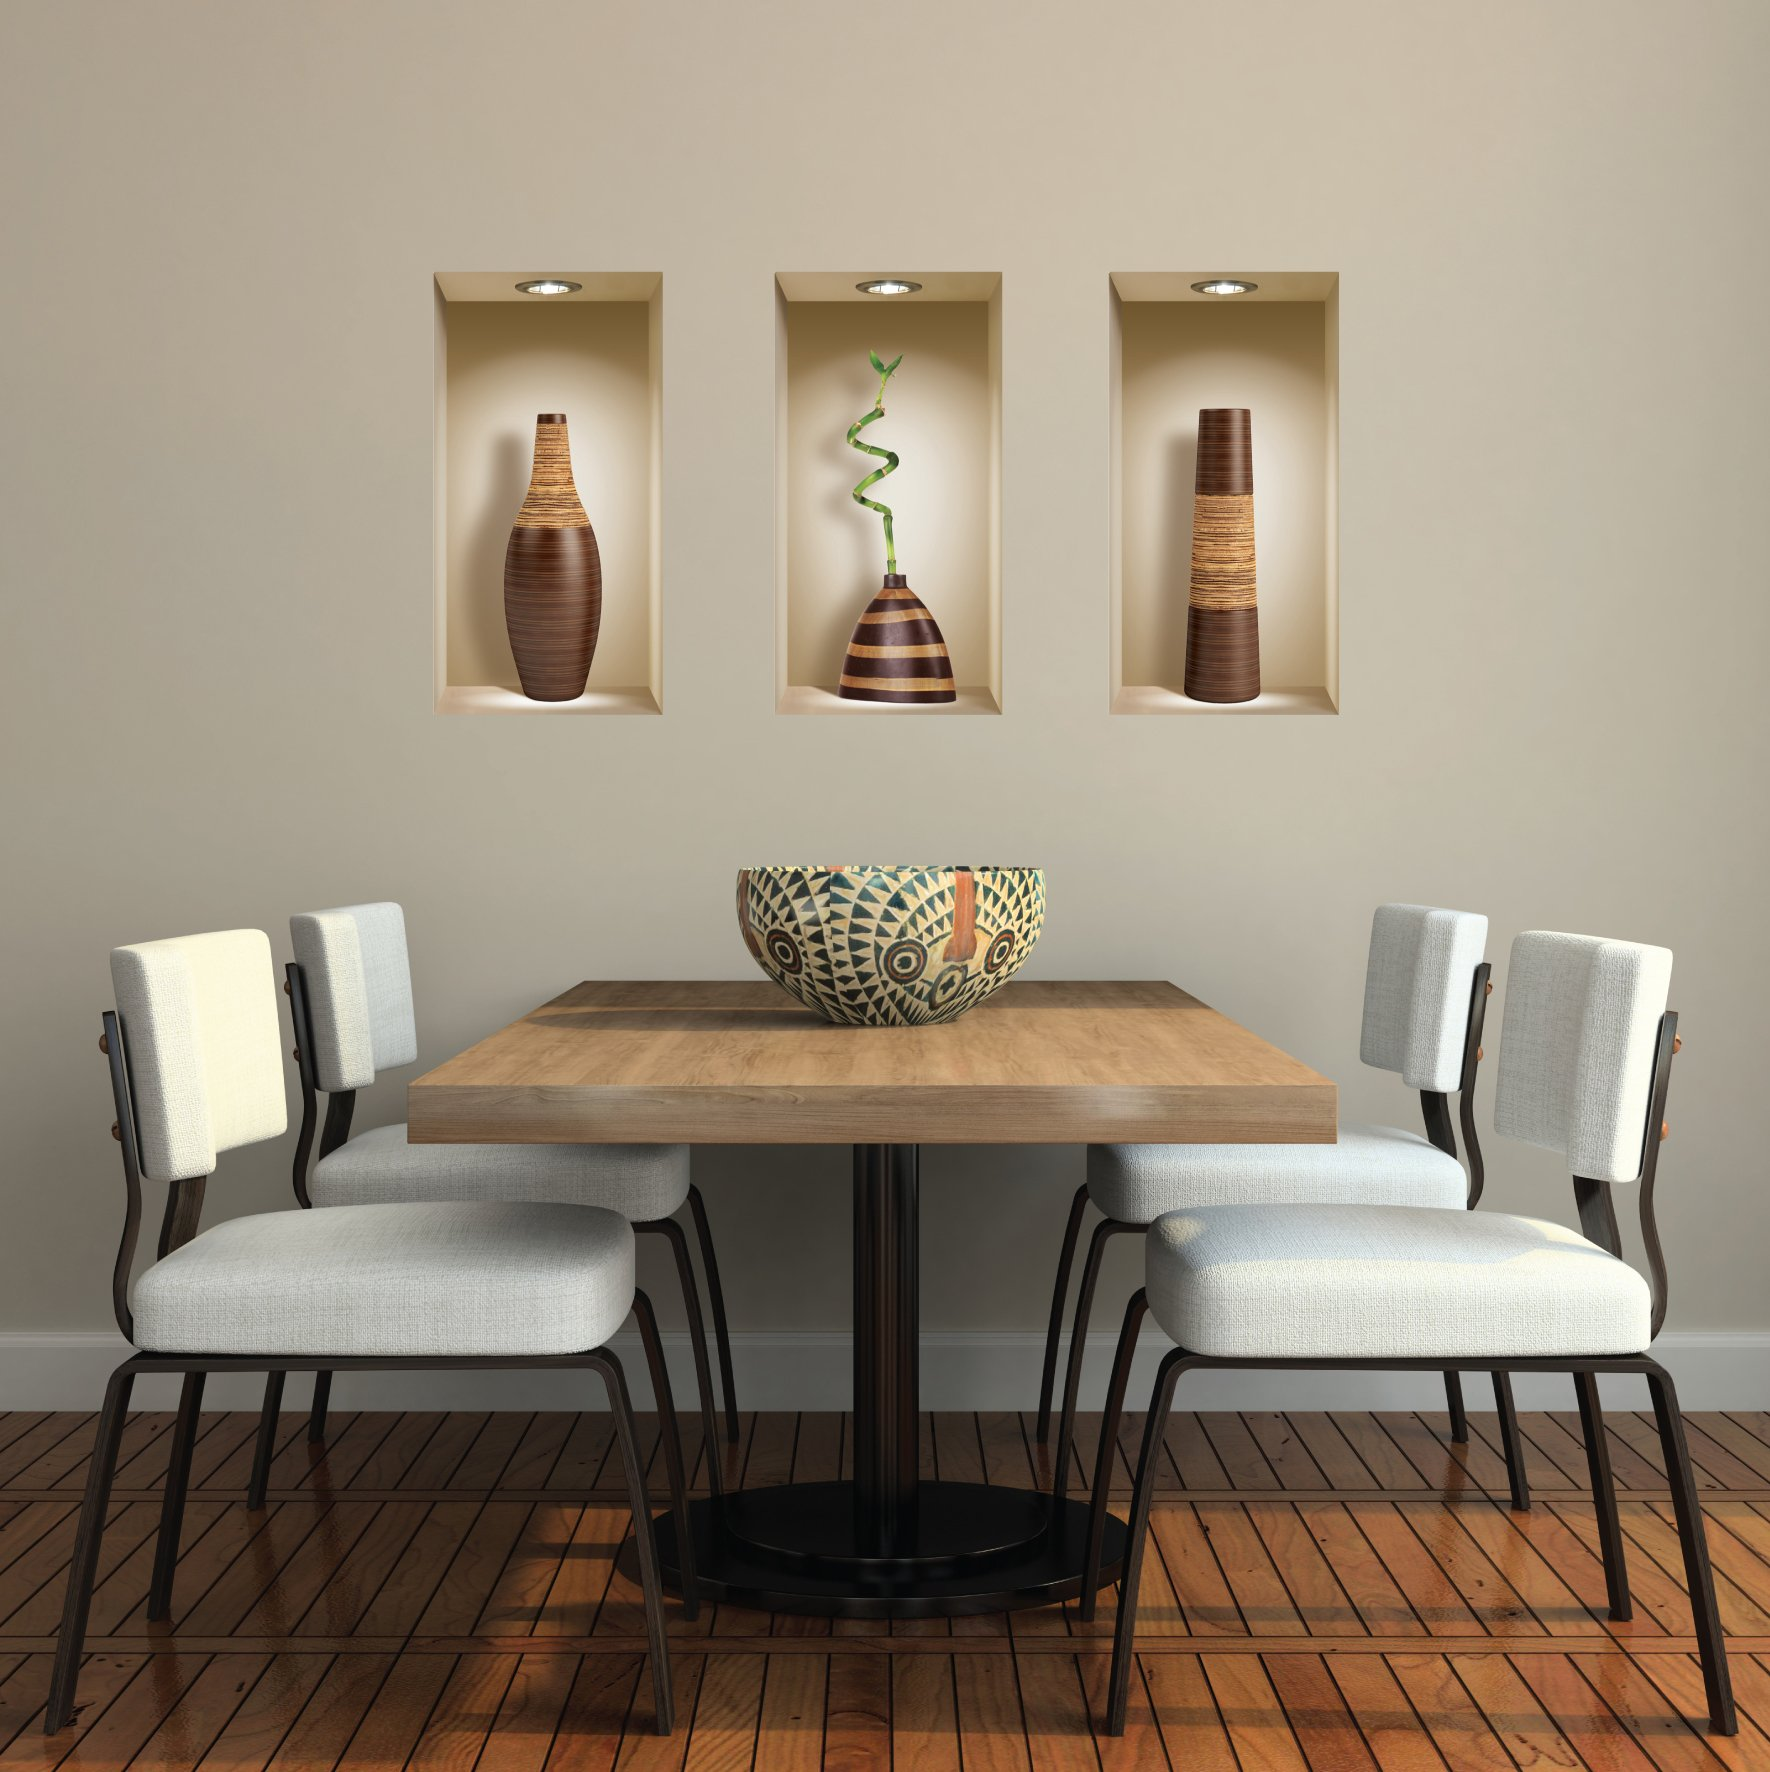 The Nisha Art Magic 3D Vinyl Removable Wall Sticker Decals DIY, Set of 3, Brown Vases by the Nisha (Image #4)